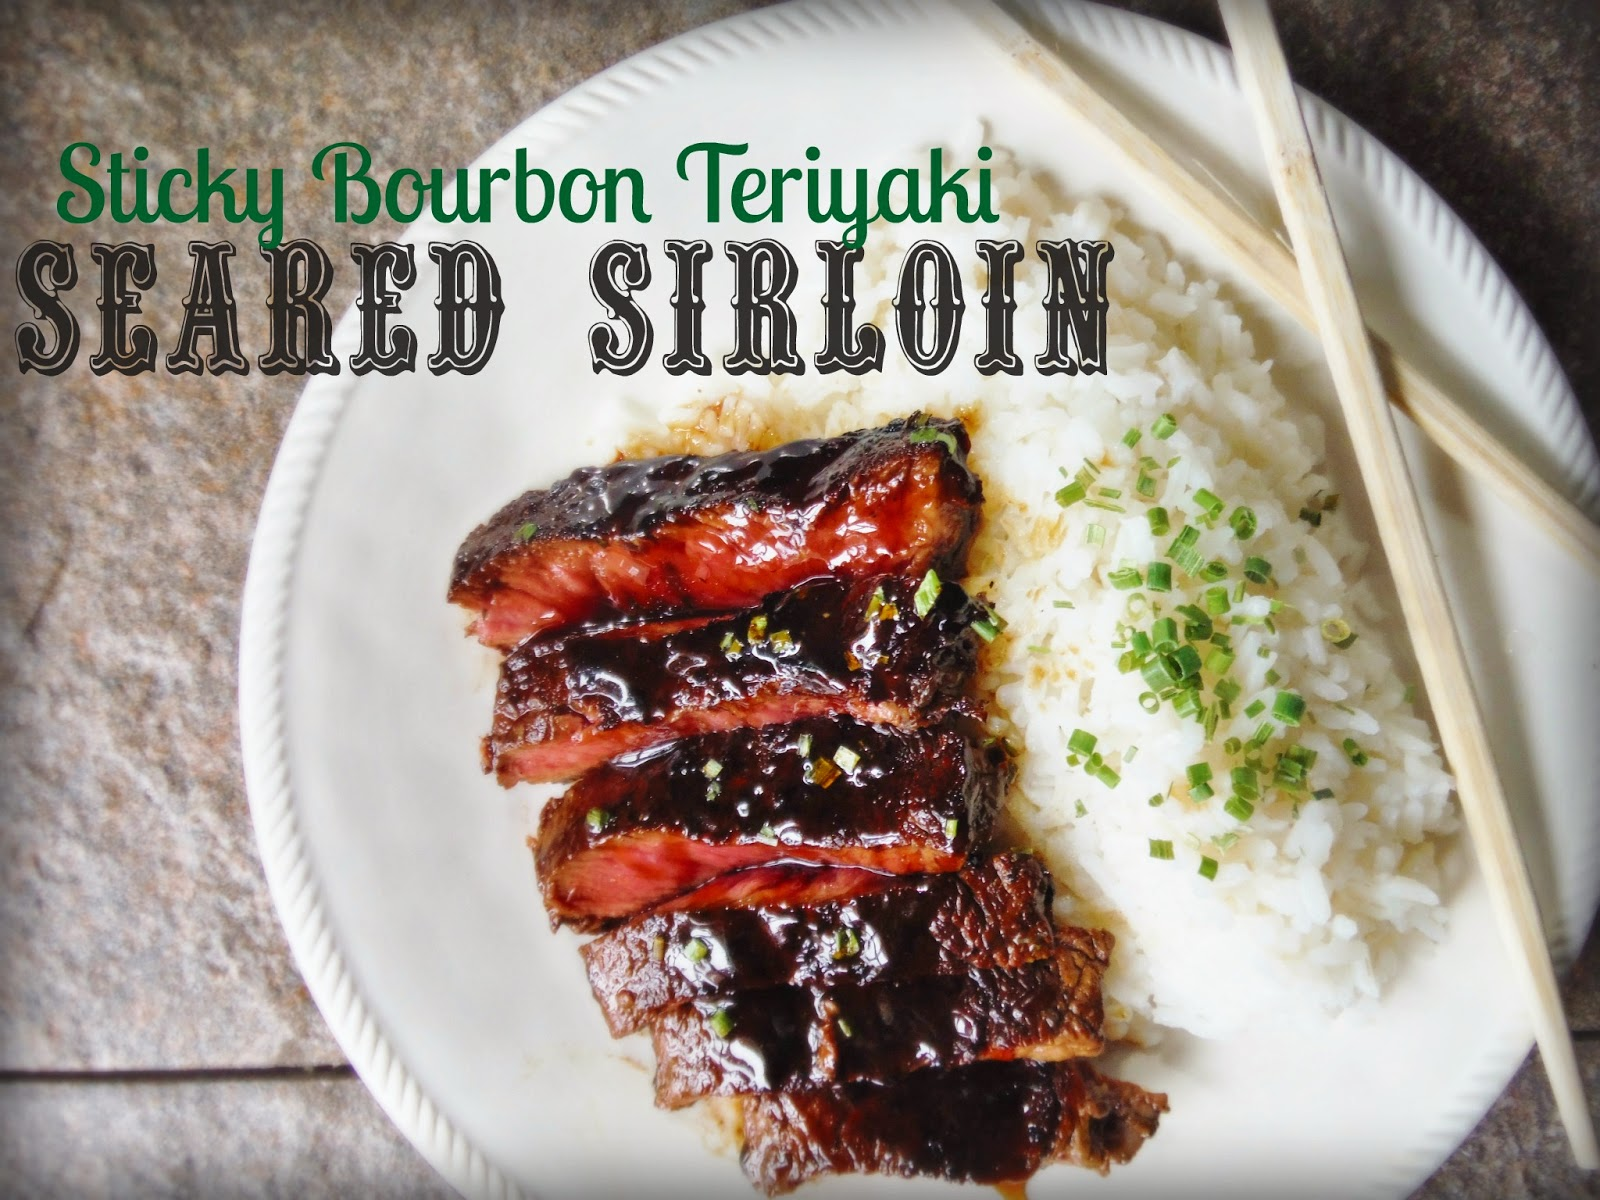 Sticky Bourbon Teriyaki Seared Sirloin Steak